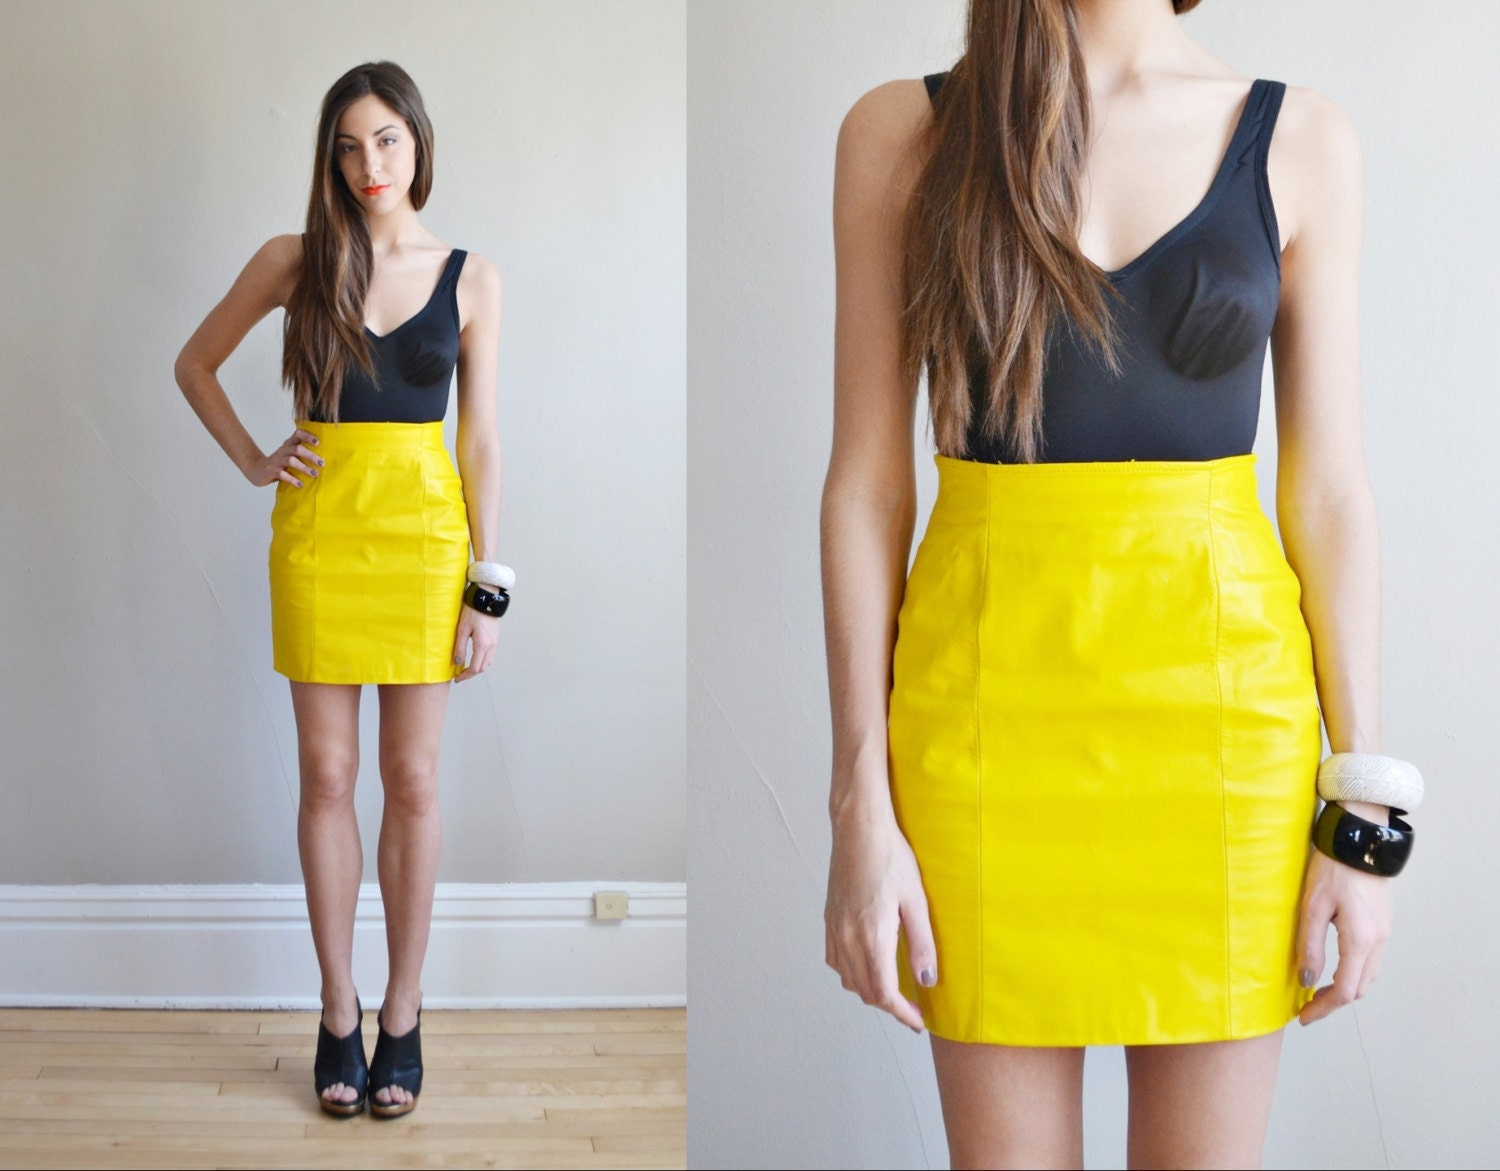 vtg 80s neon yellow high waist leather mini skirt fitted